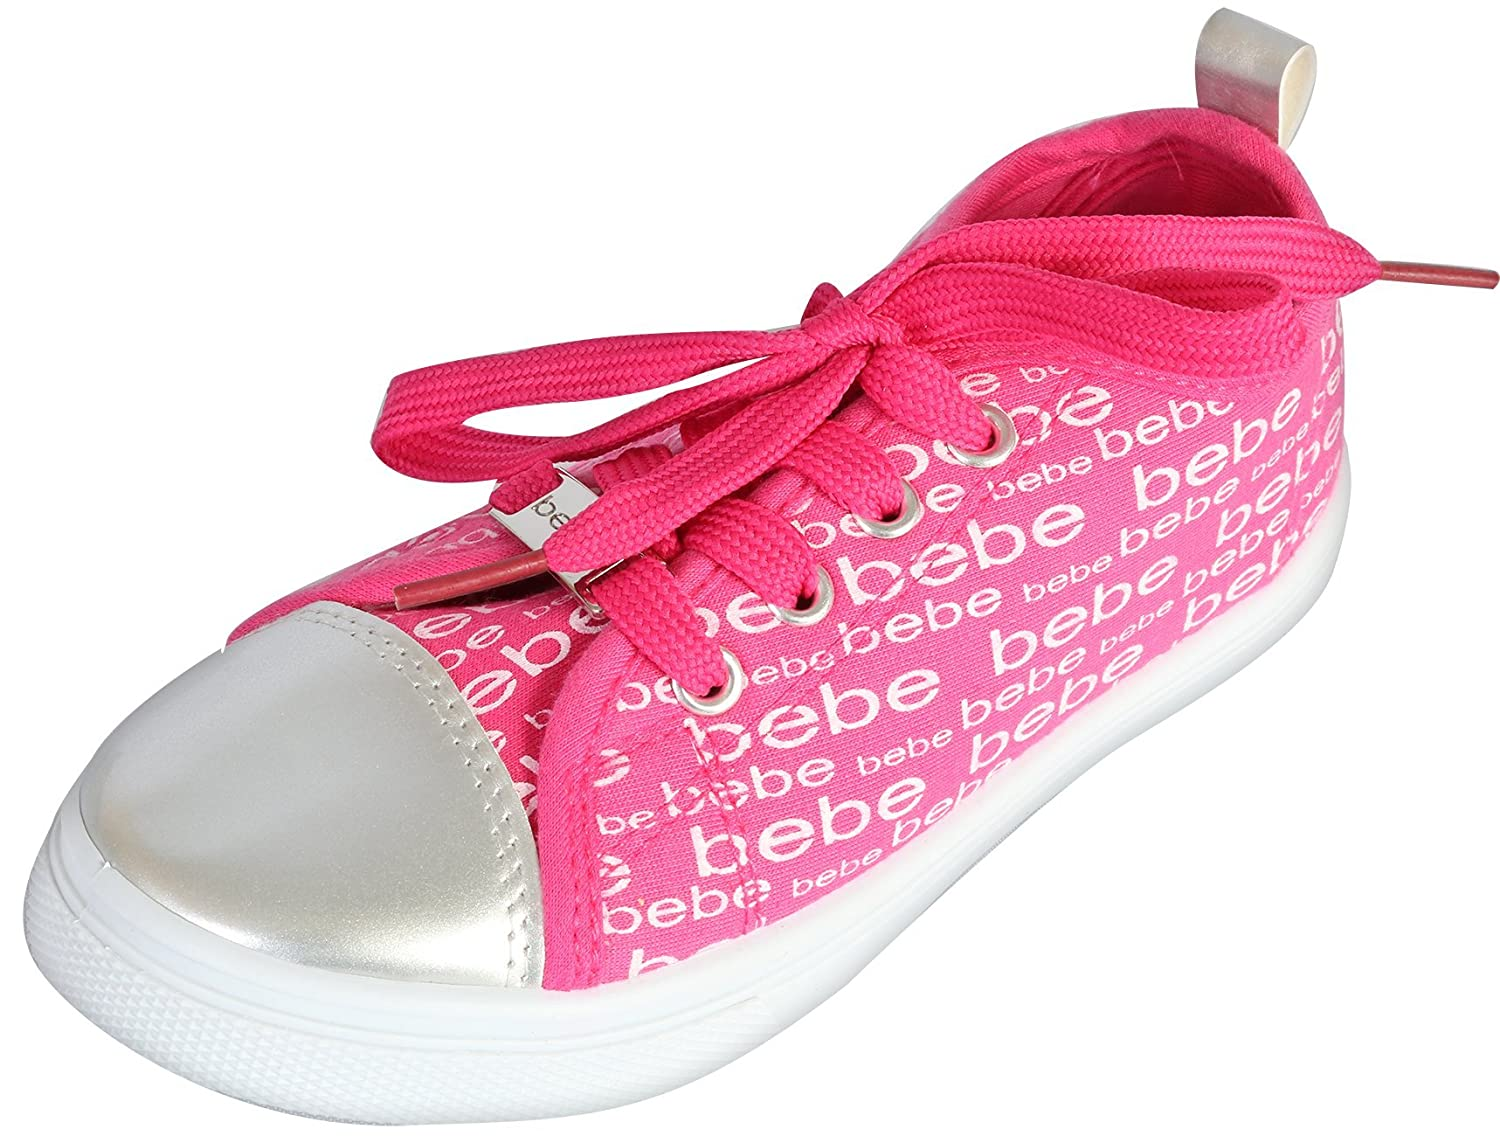 Amazon.com: bebe Girls Low Top Canvas Fashion Sneakers ...